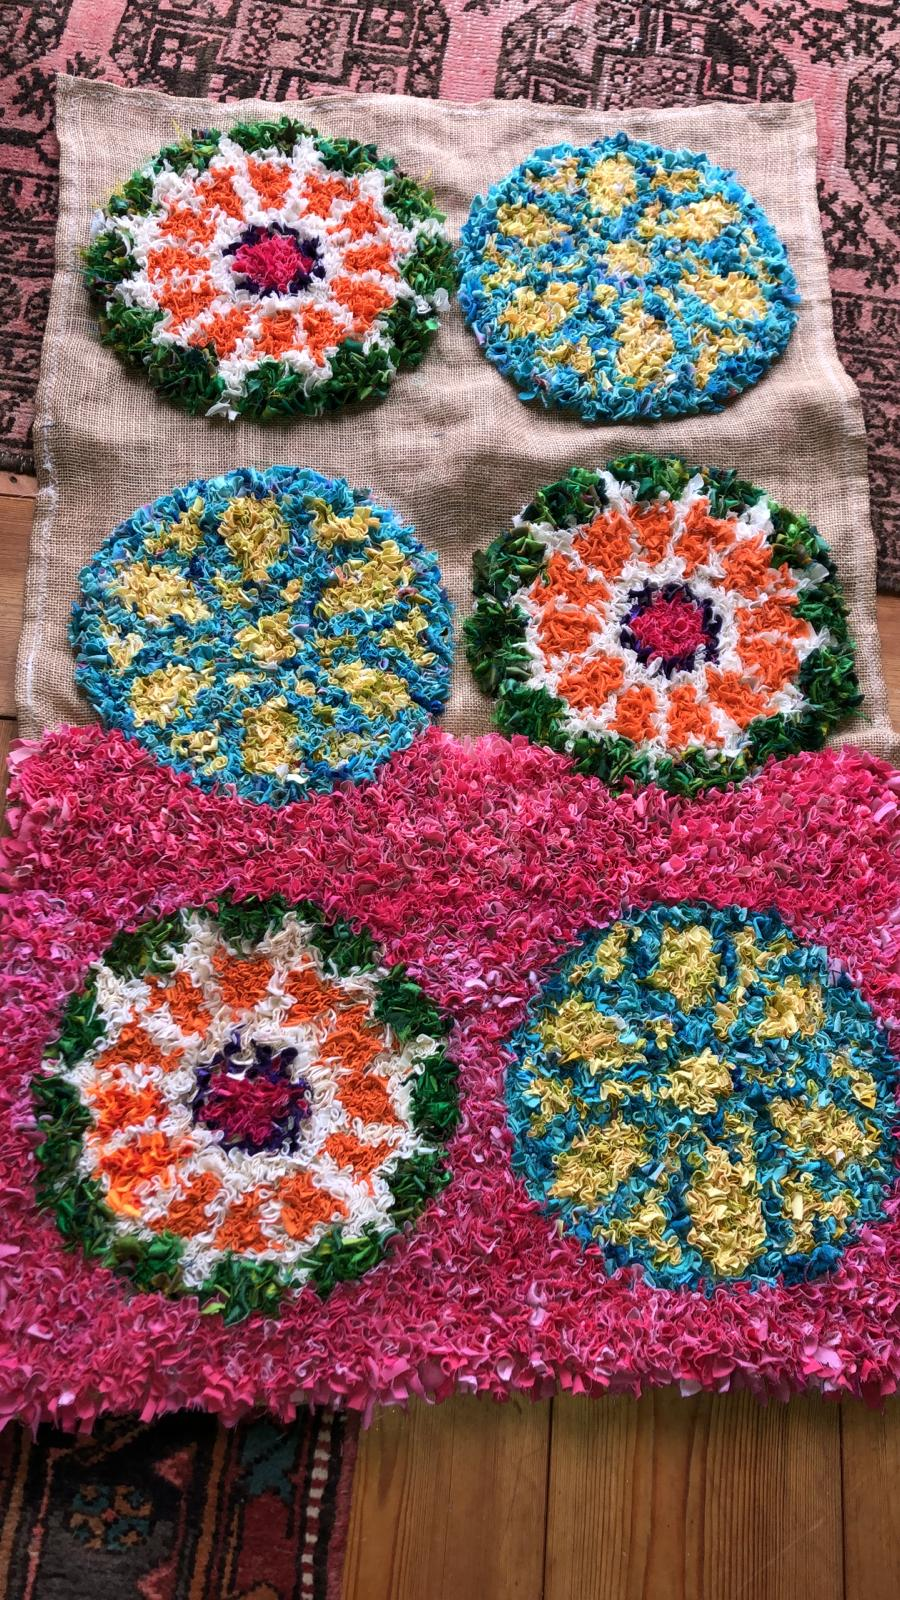 Work in progress half finished pink rag rug with circular geometric design